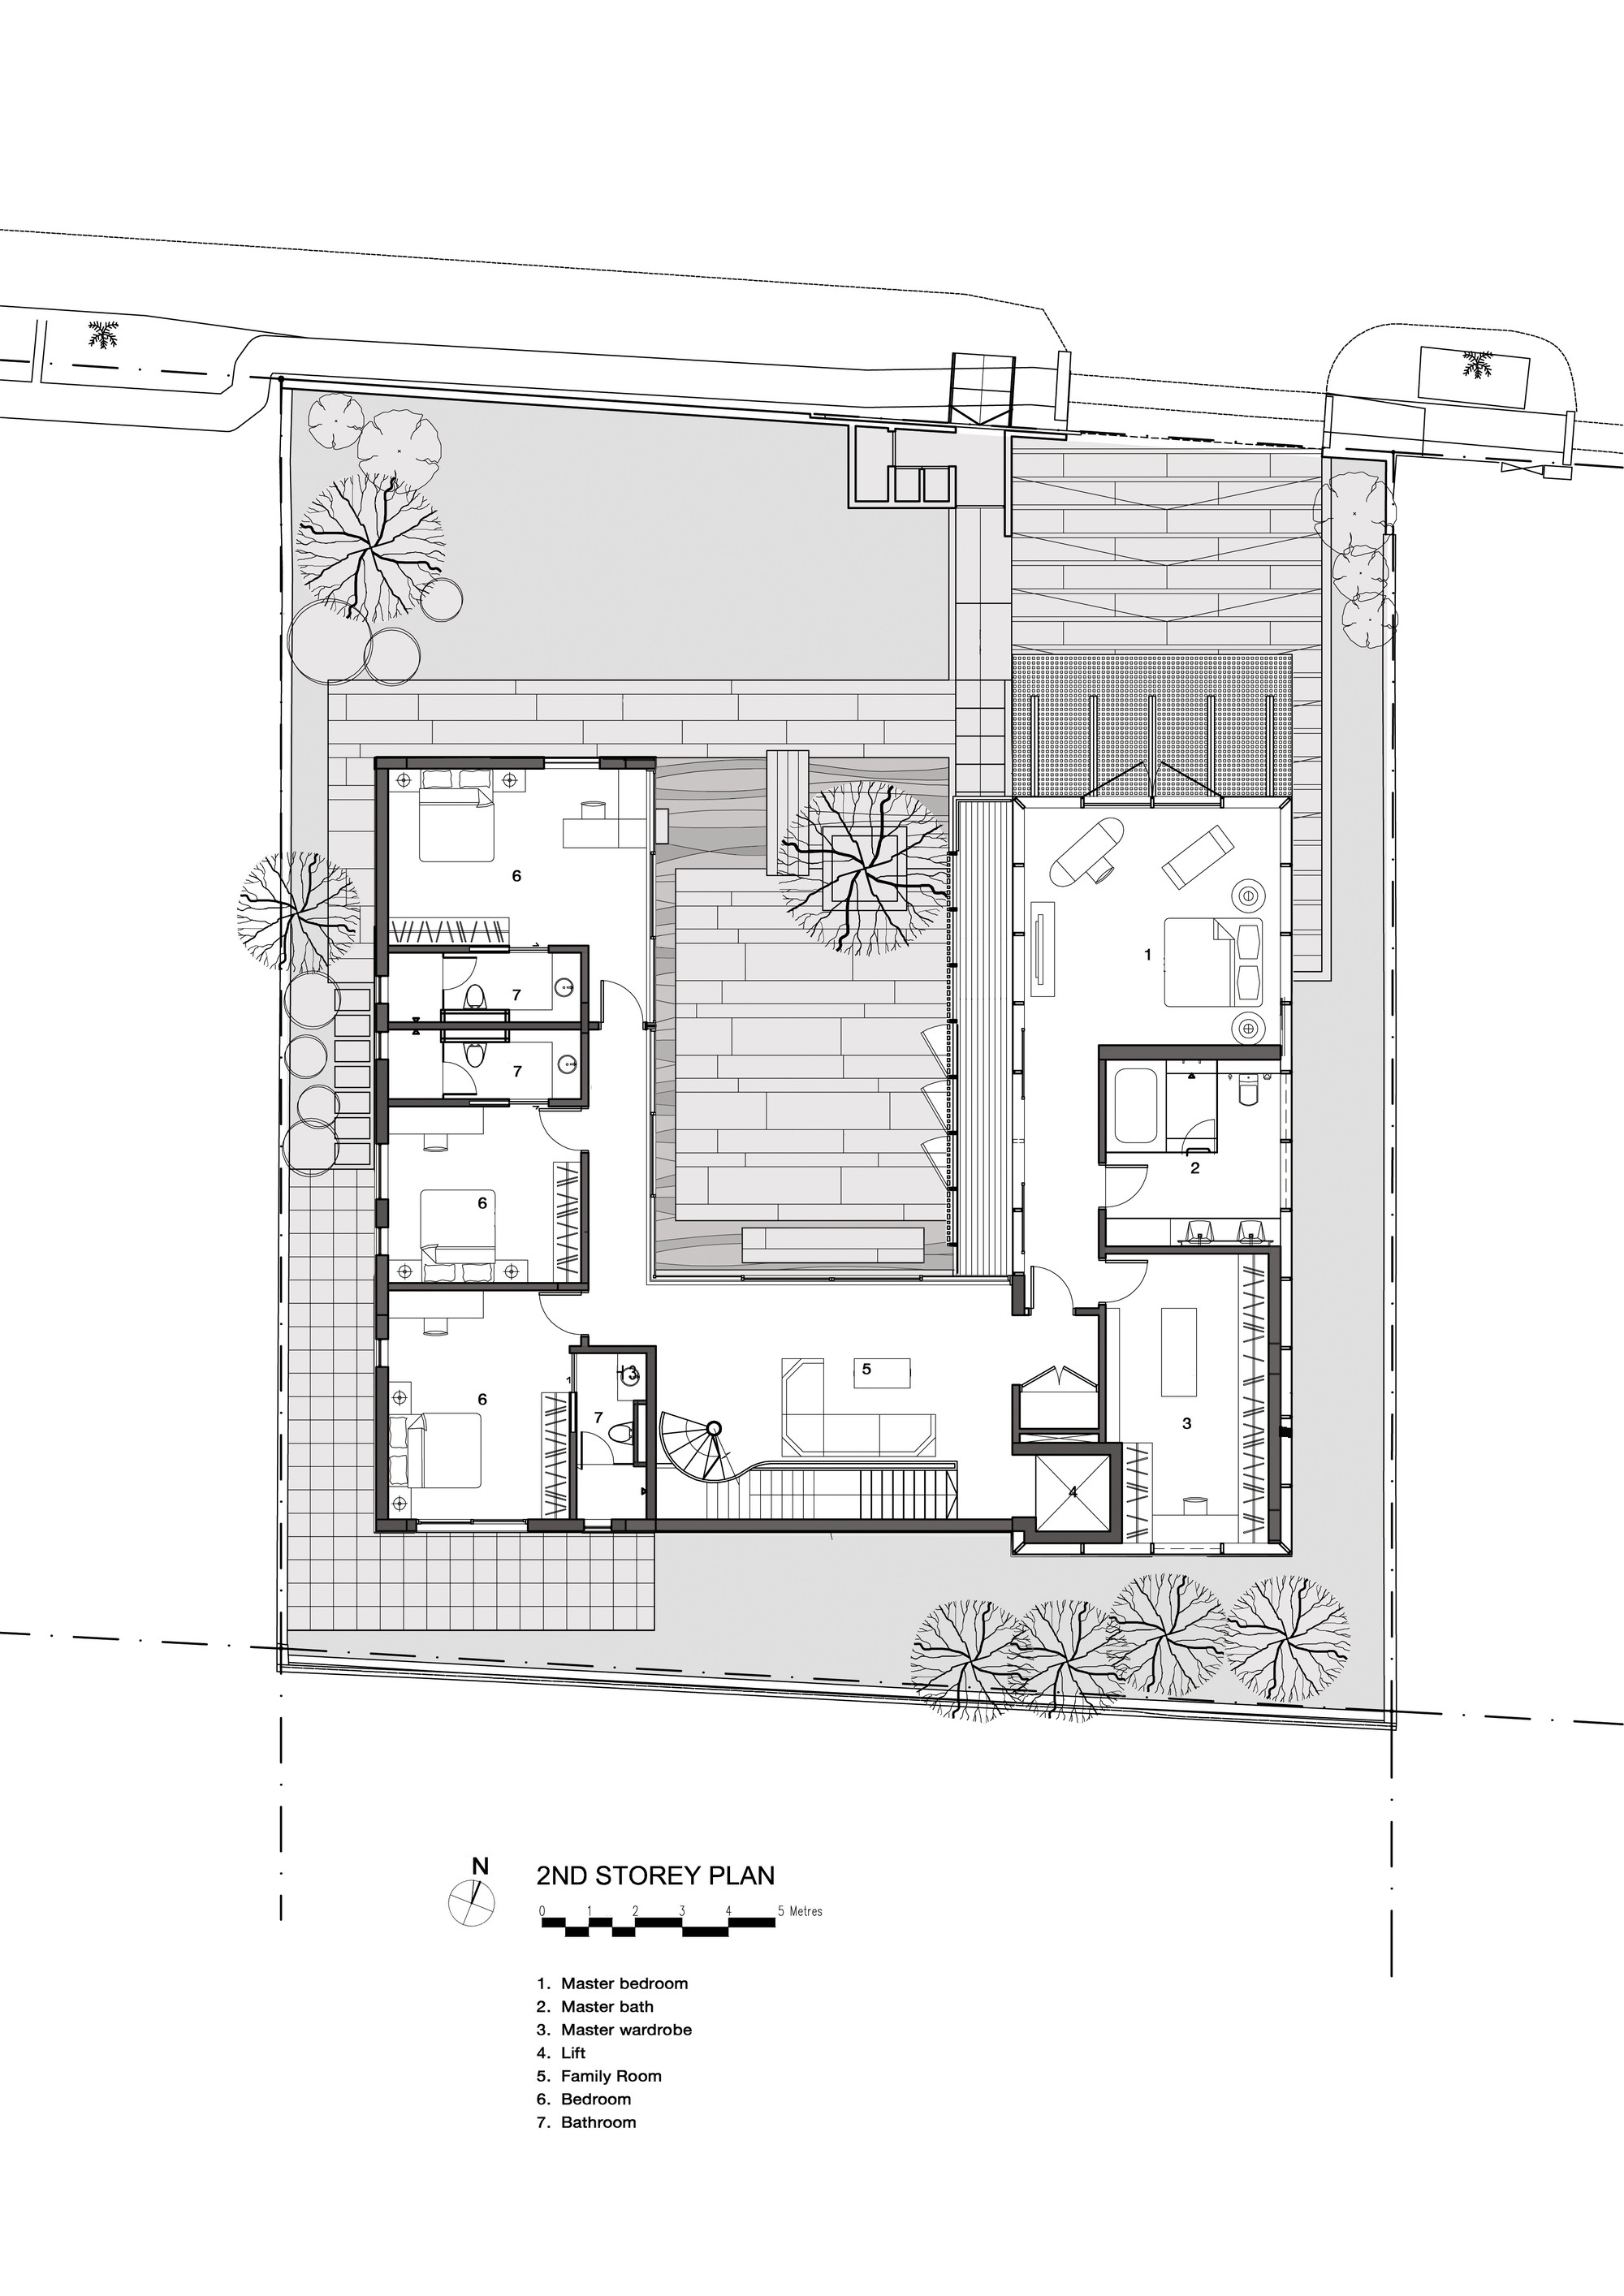 courtyard house plan gallery of the courtyard house ar43 architects 17 8047